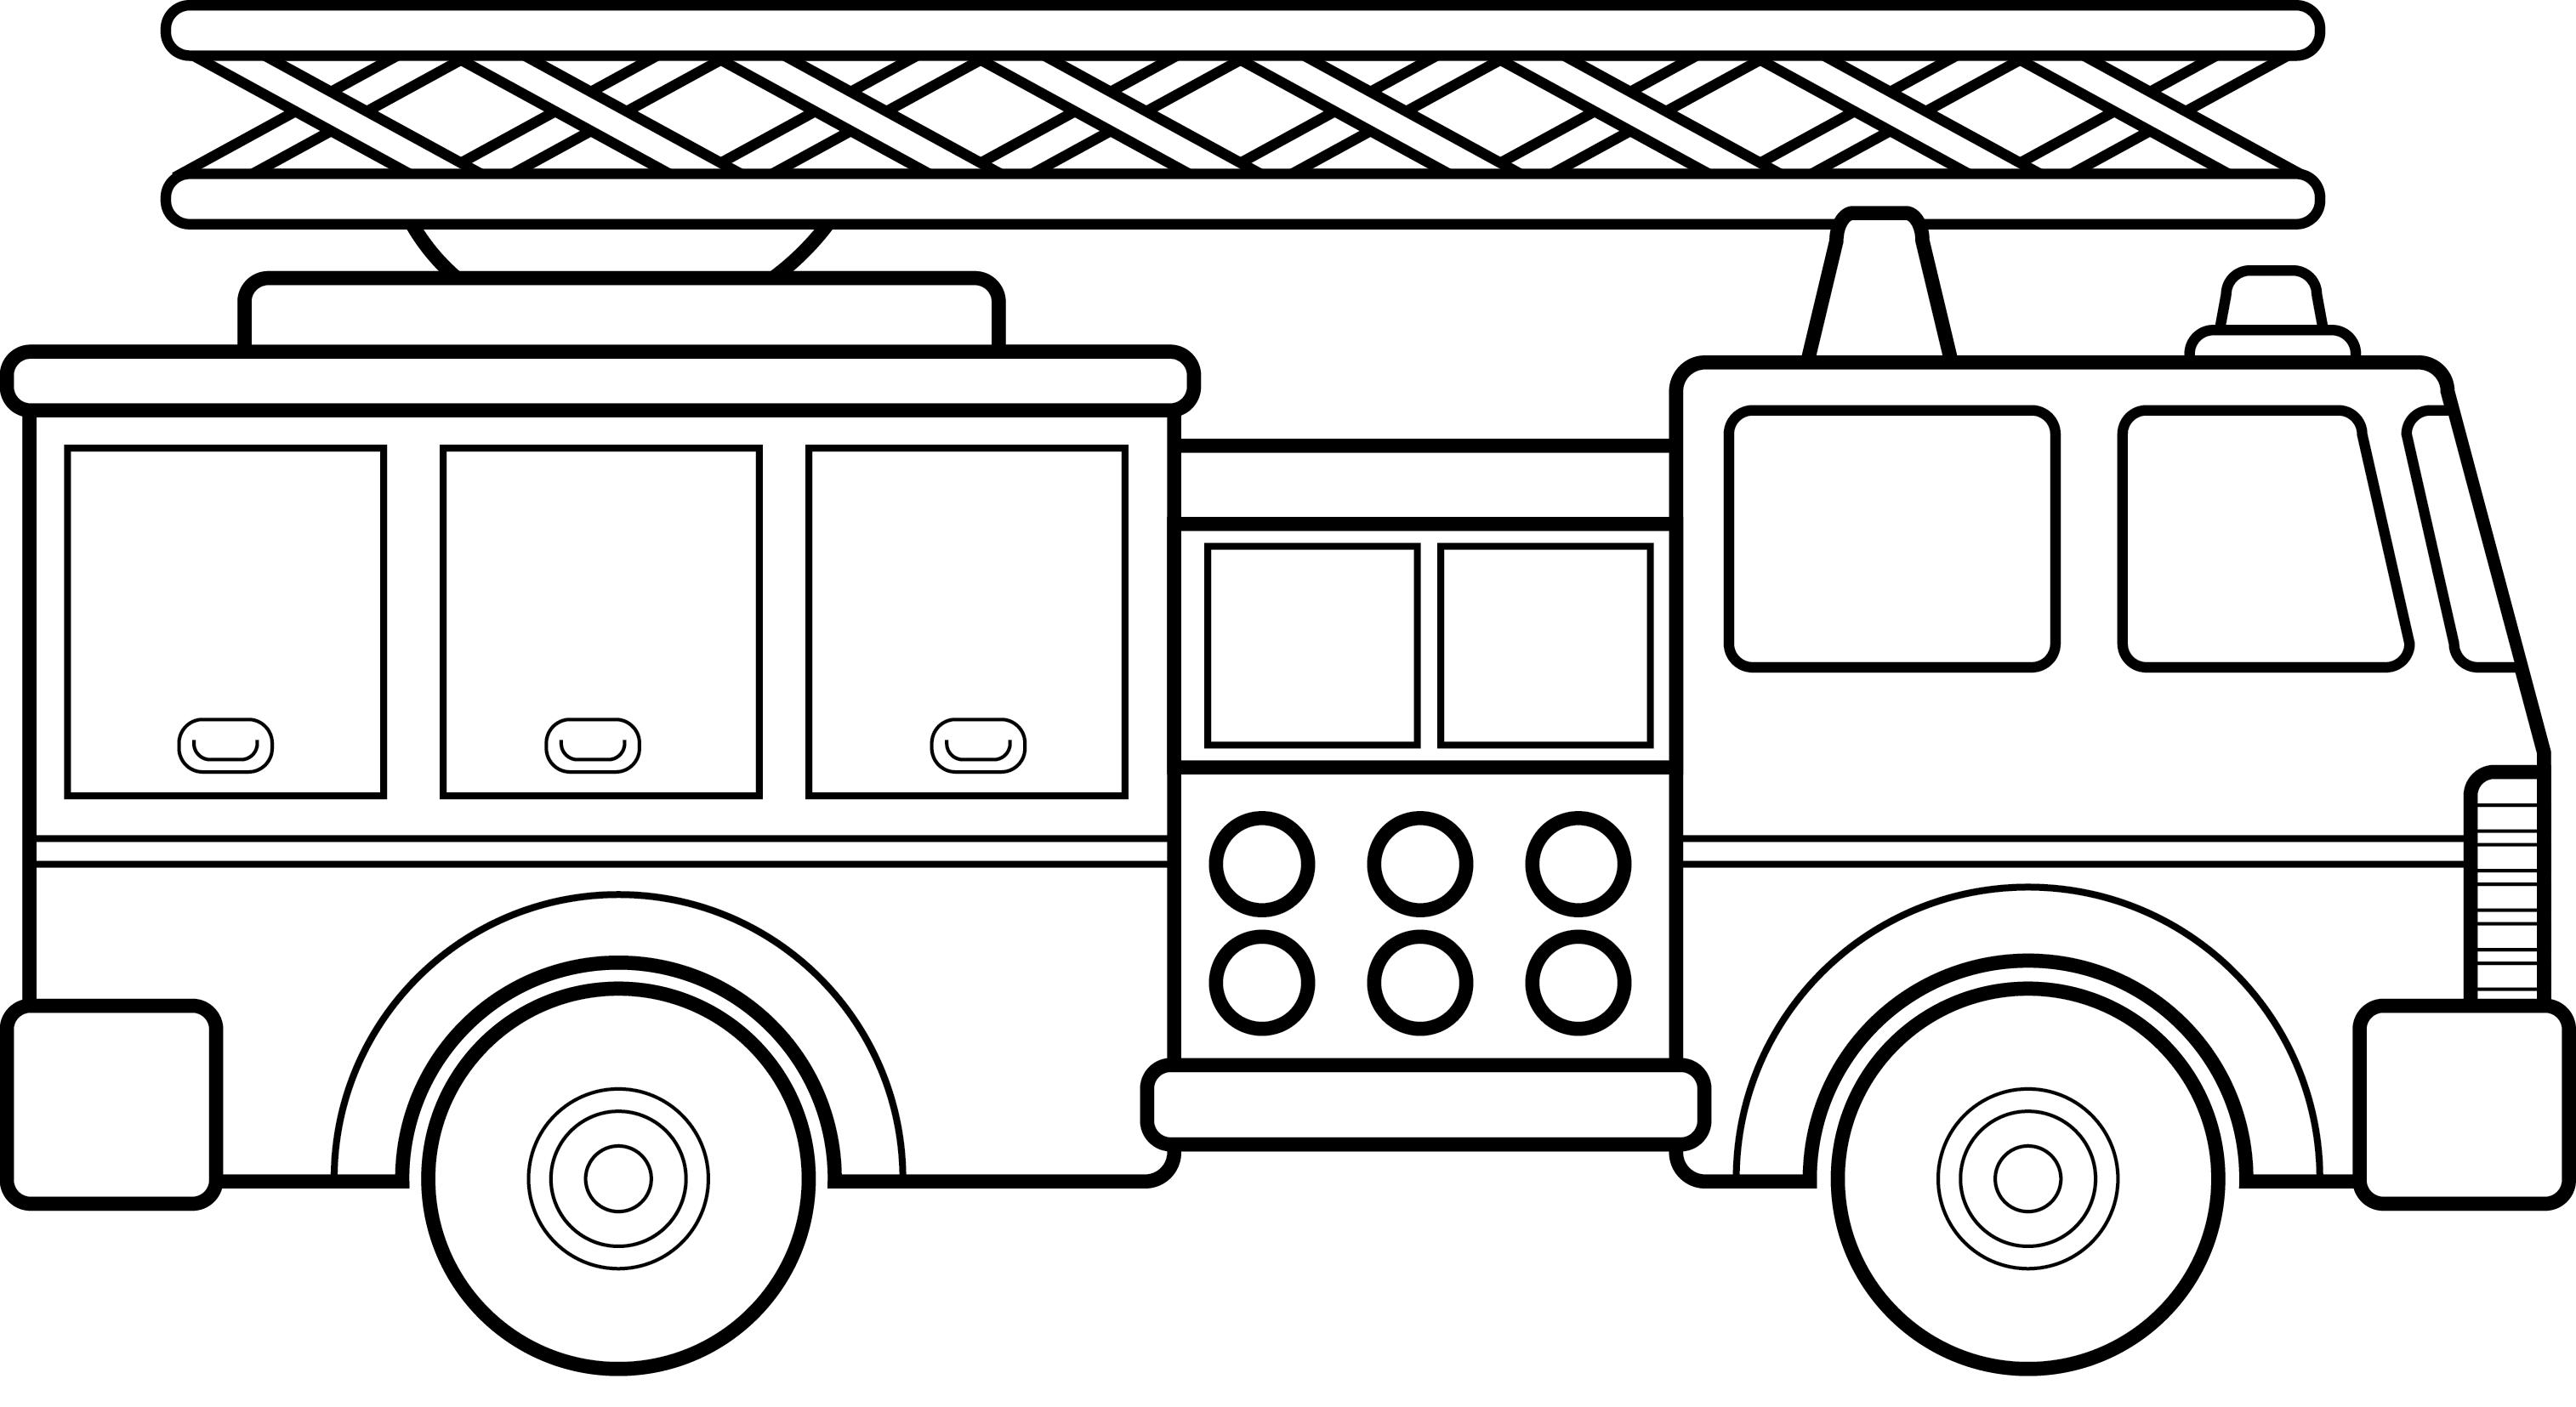 Fire truck clipart black white clipart freeuse stock Top fire truck cars and trucks clip art black white car library ... clipart freeuse stock